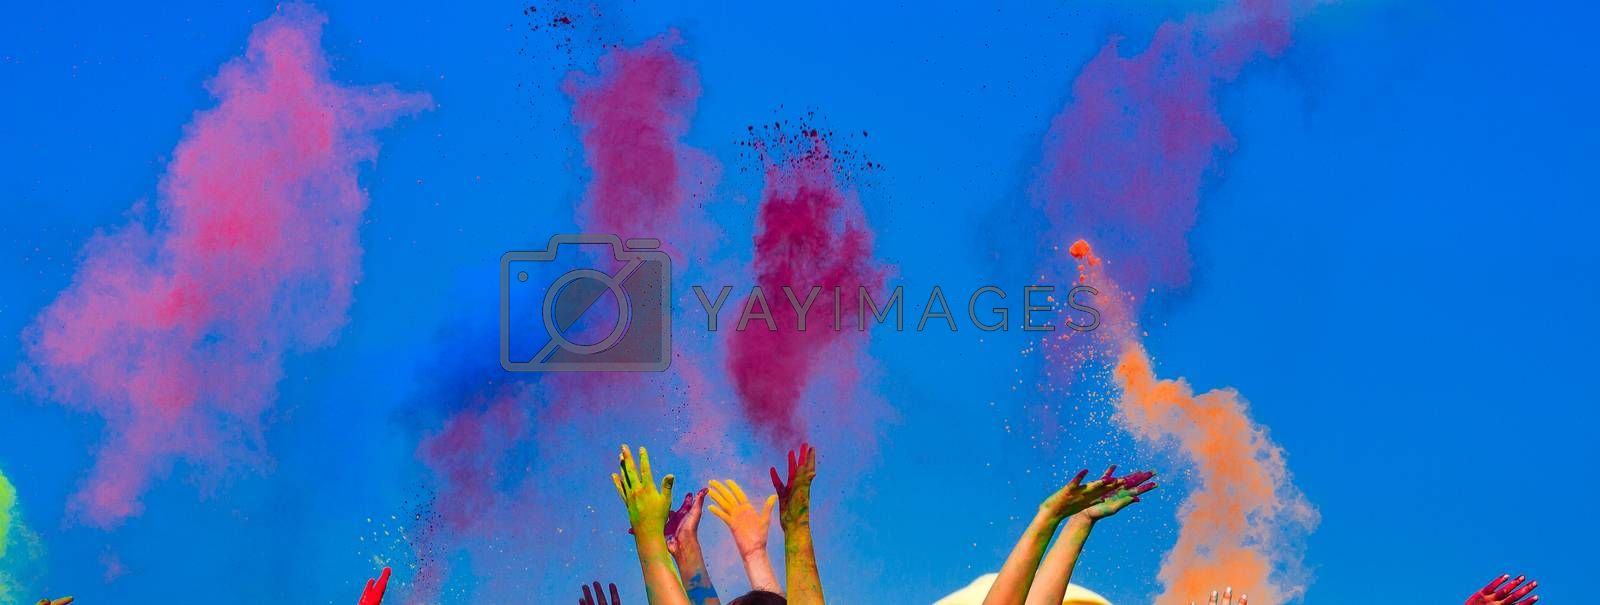 At the color Holi festival, hands in the air, blue sky behind